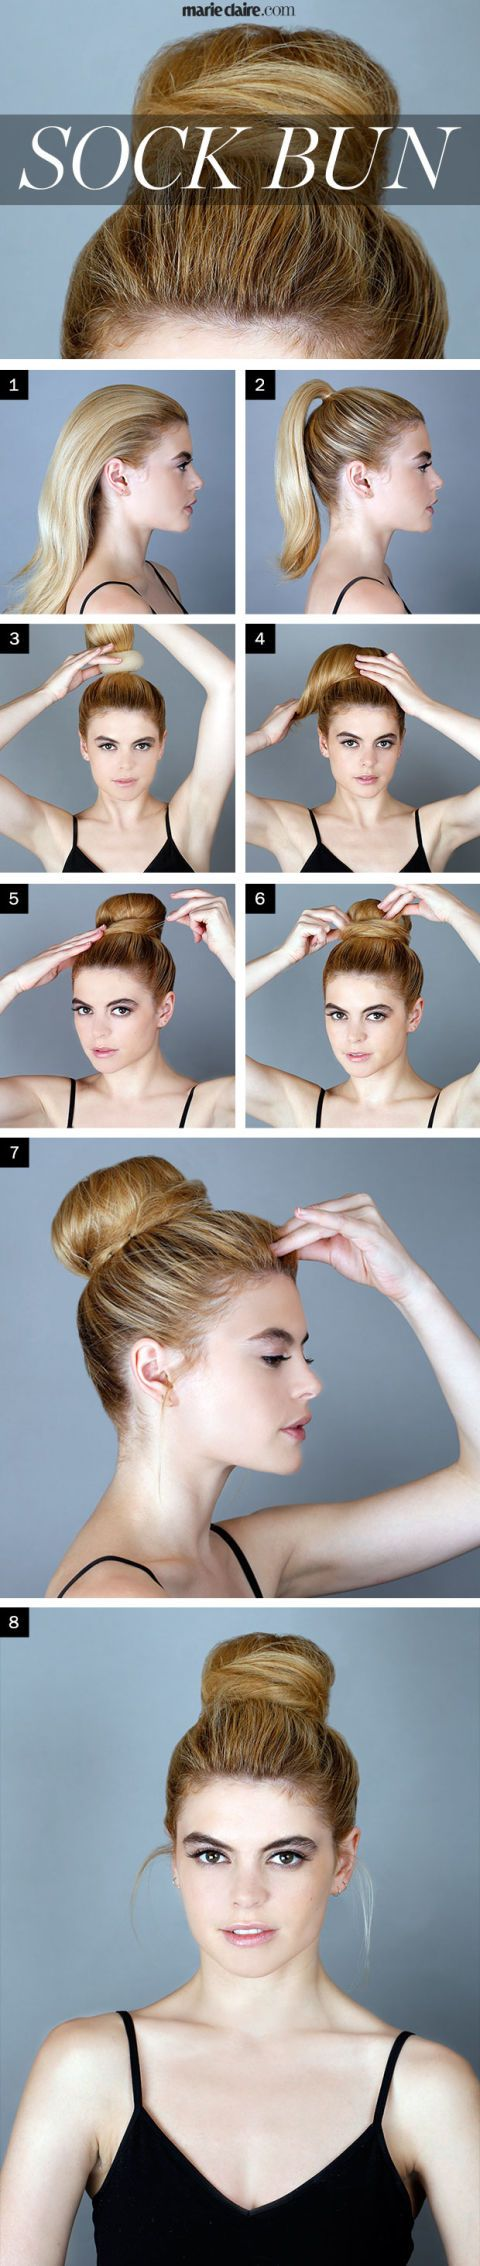 Hair How-To: Sock Bun